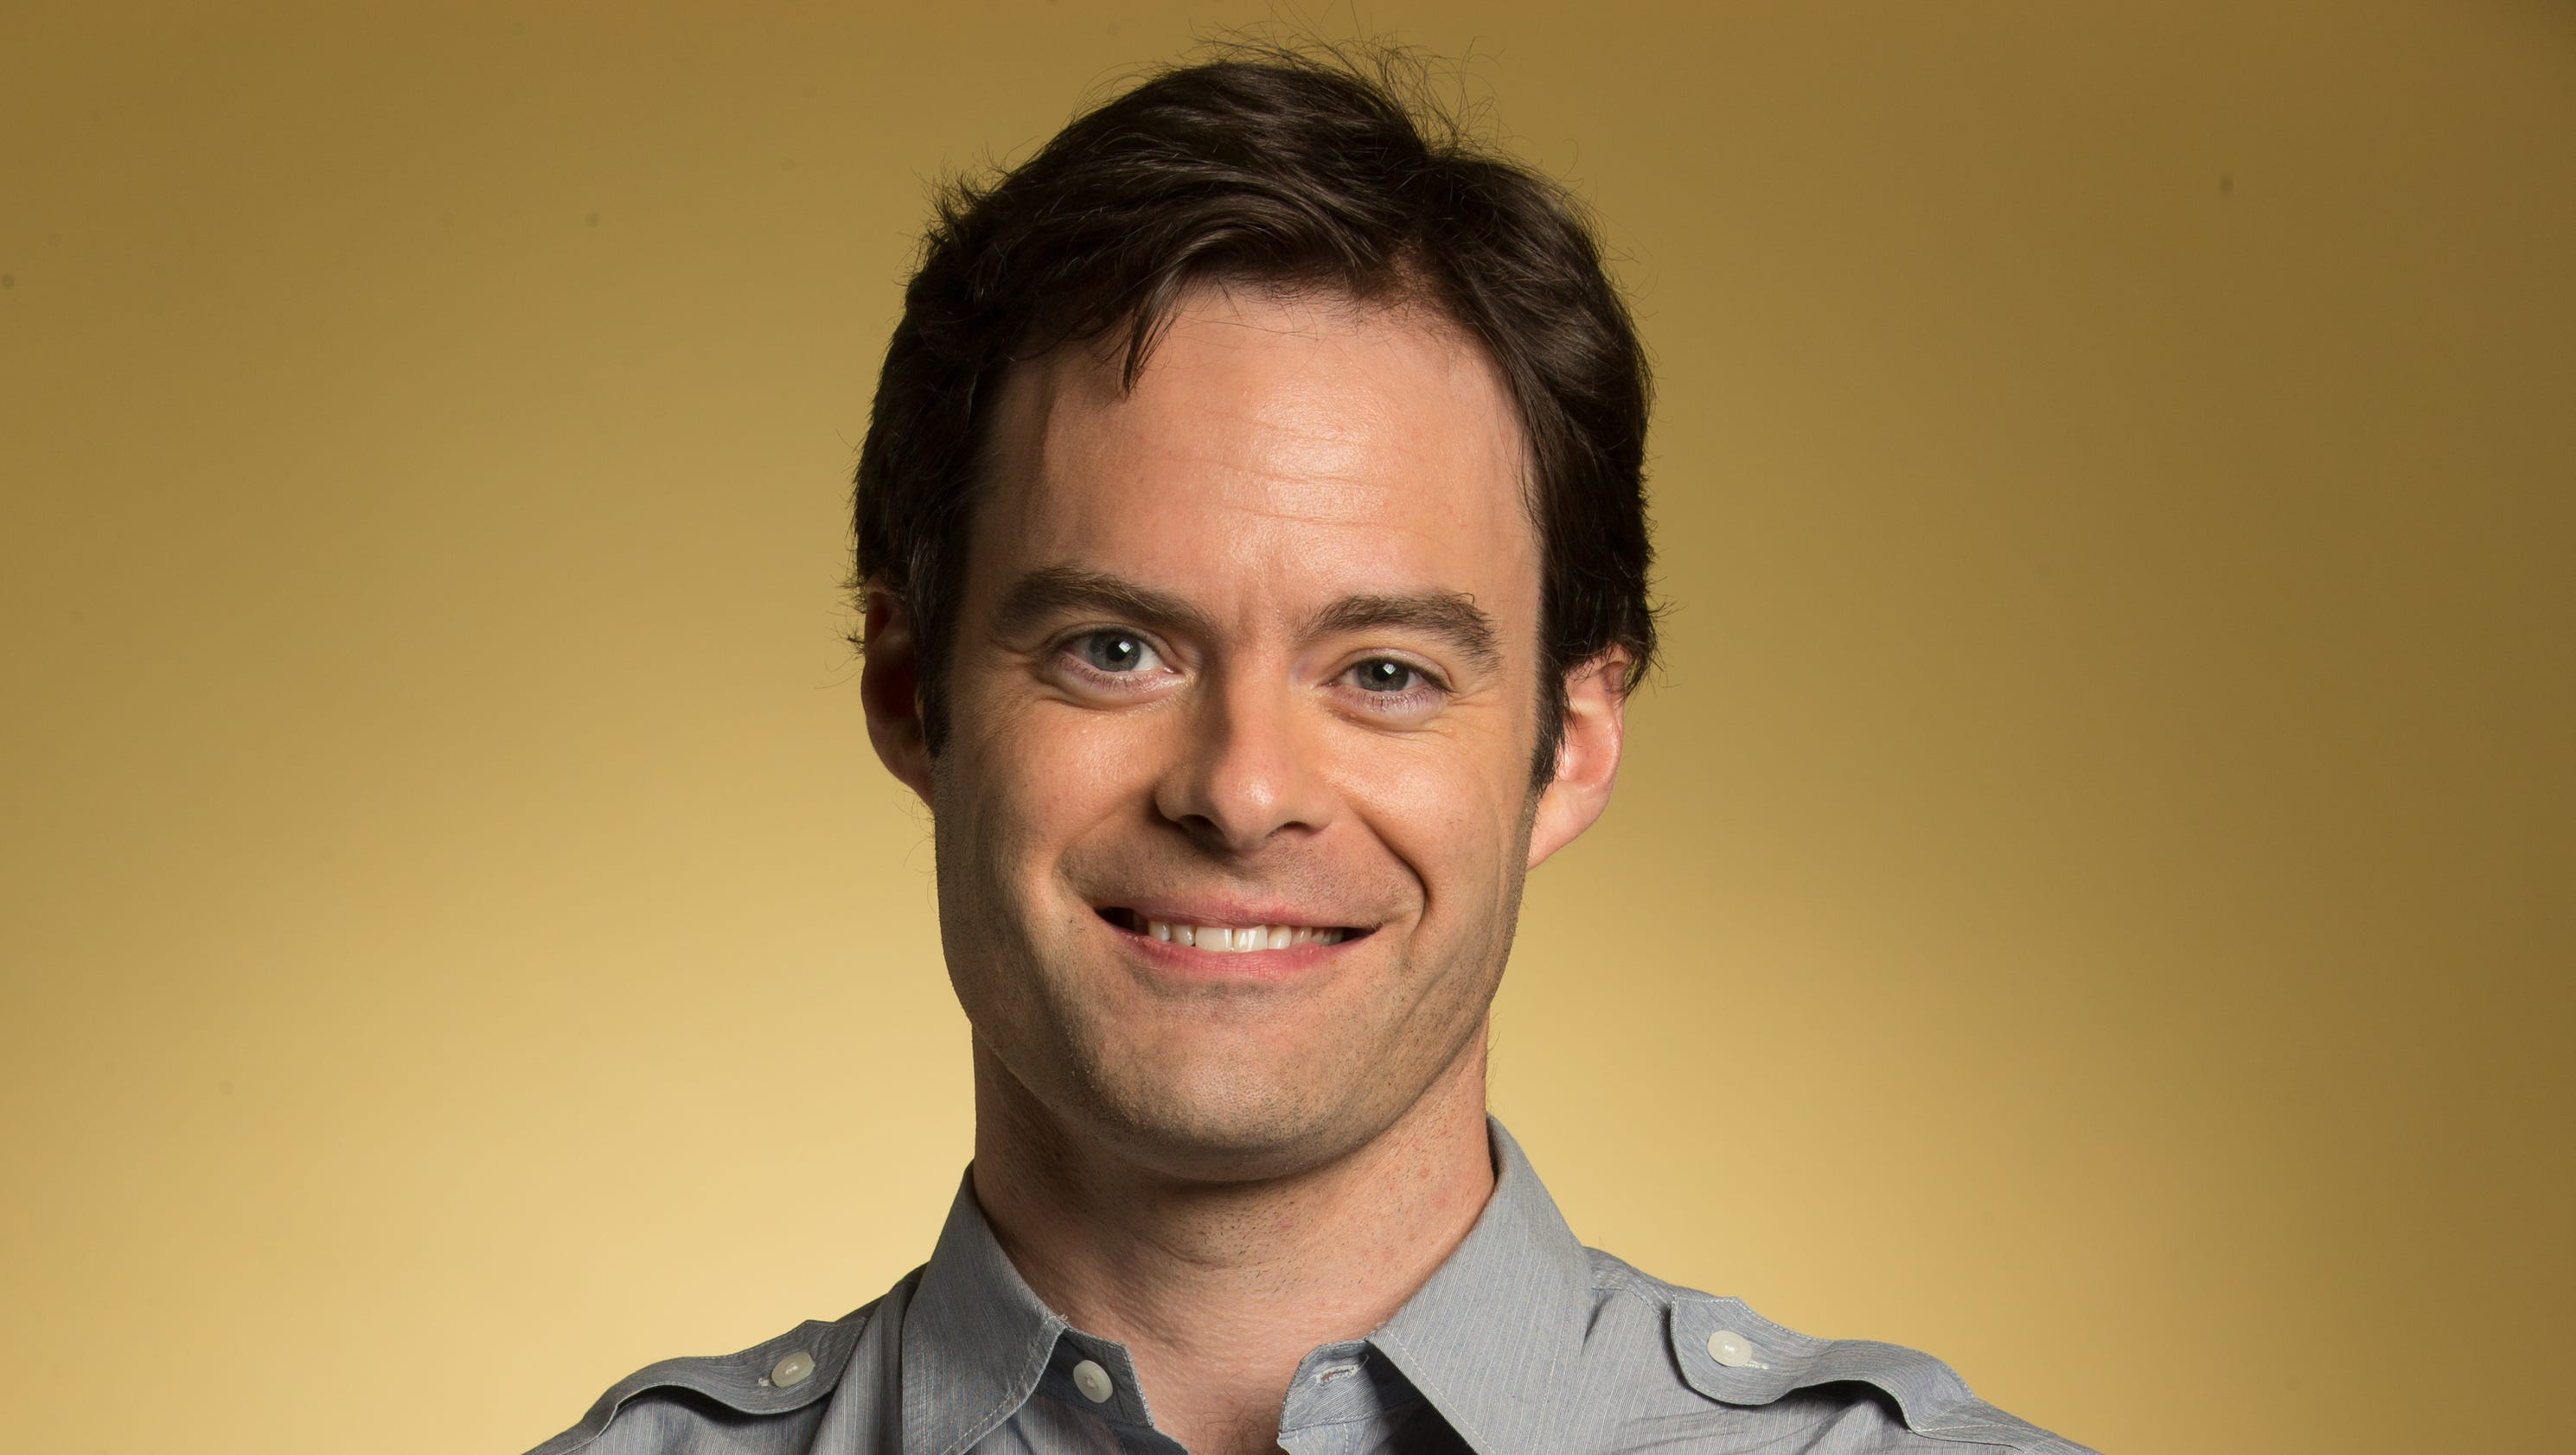 Bill Hader To Play Hitman In Hbo Comedy Series